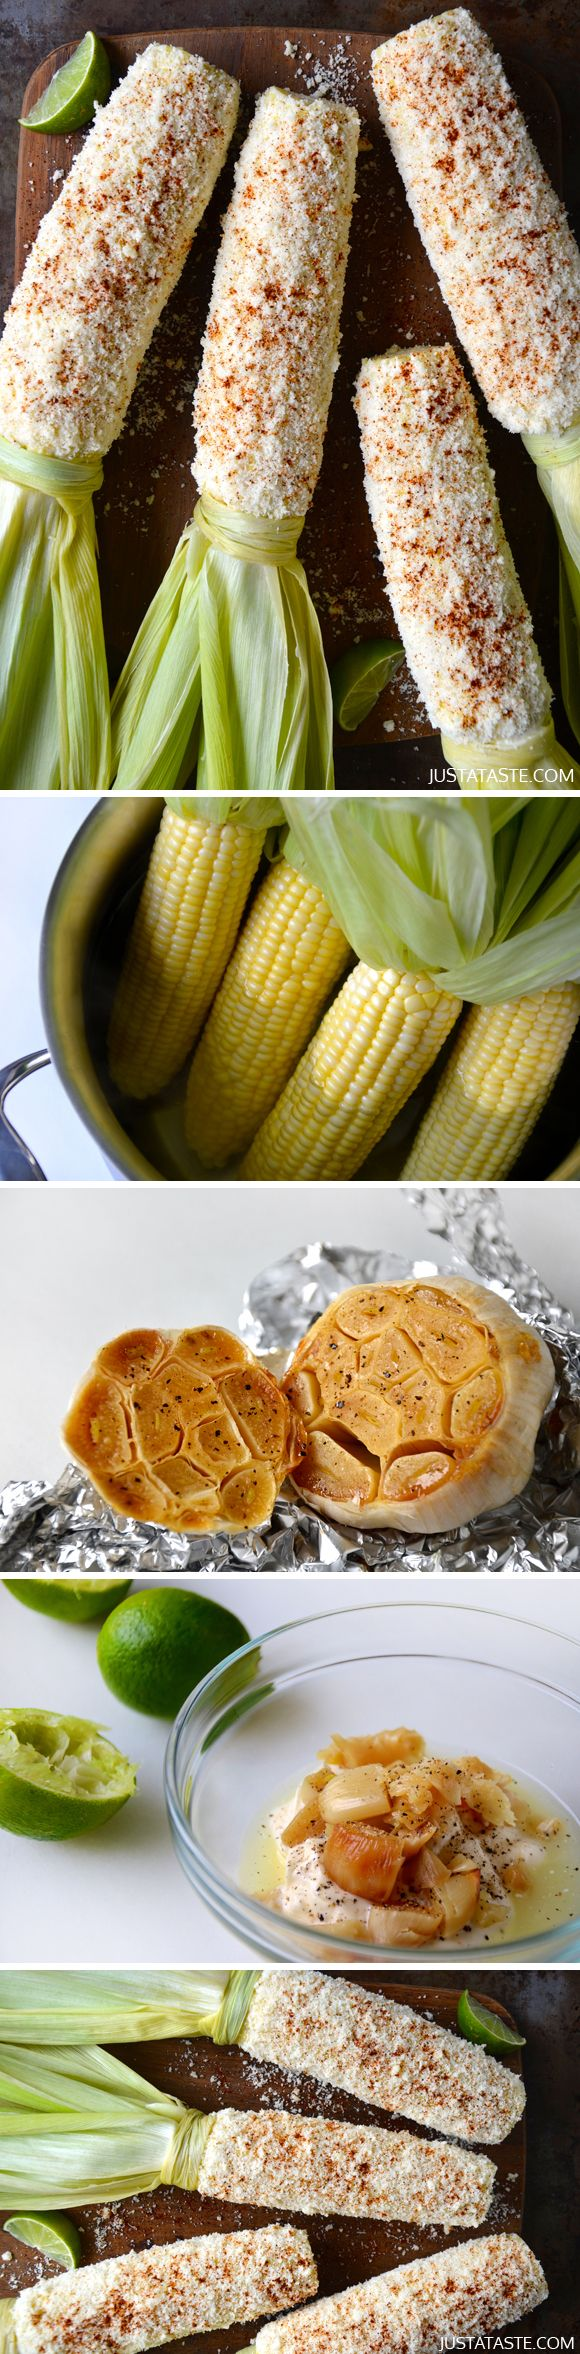 Cheesy Roasted Garlic Corn on the Cob - This is by far the BEST corn I ...